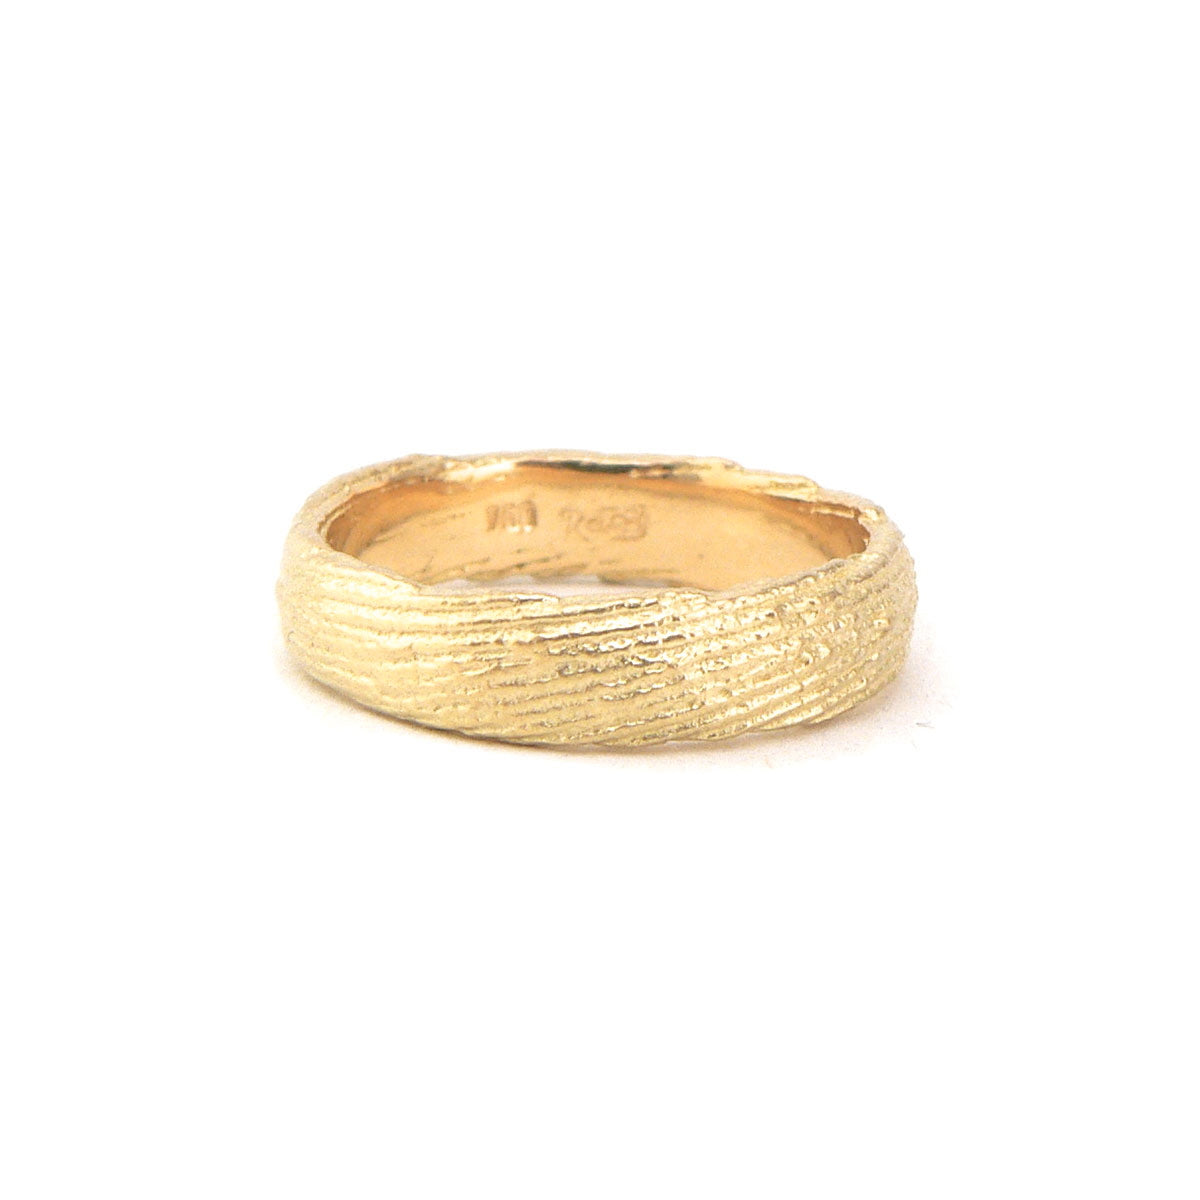 Earthy textured mens 18ct yellow gold band, custom handmade bespoke jewellery.